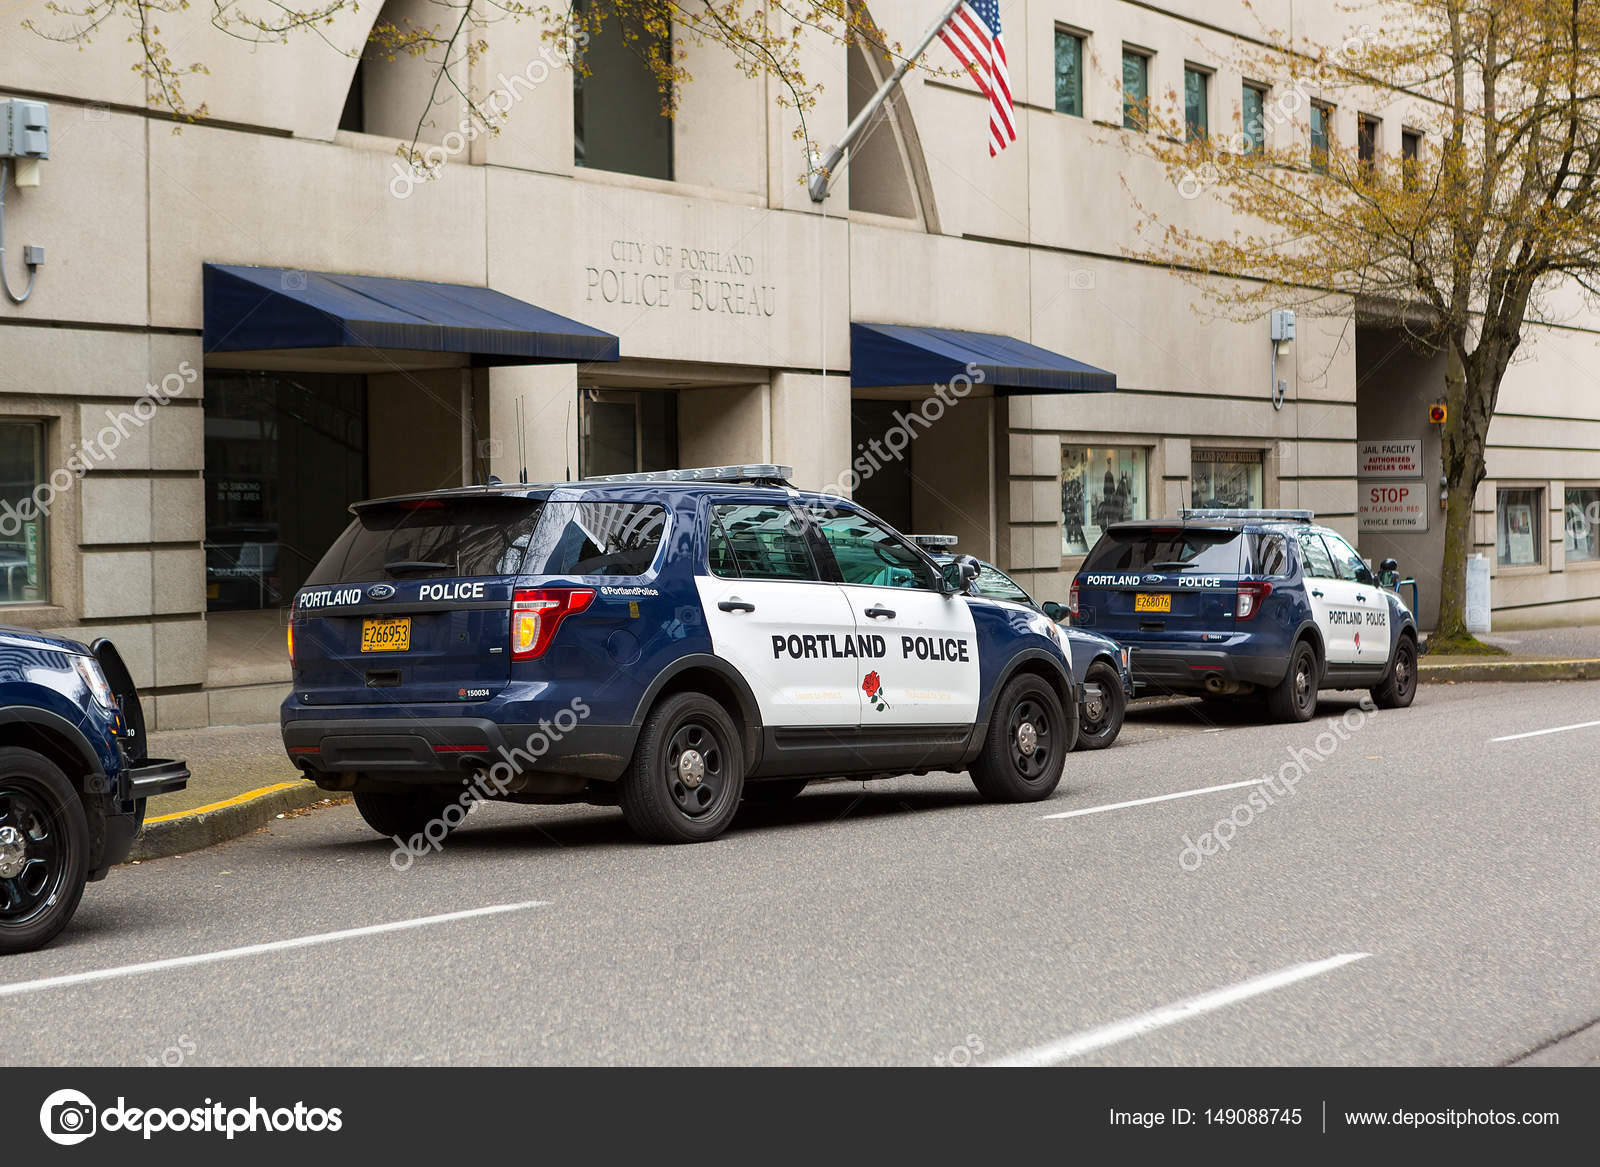 Portland police bureau suvs u2013 stock editorial photo © jpldesigns